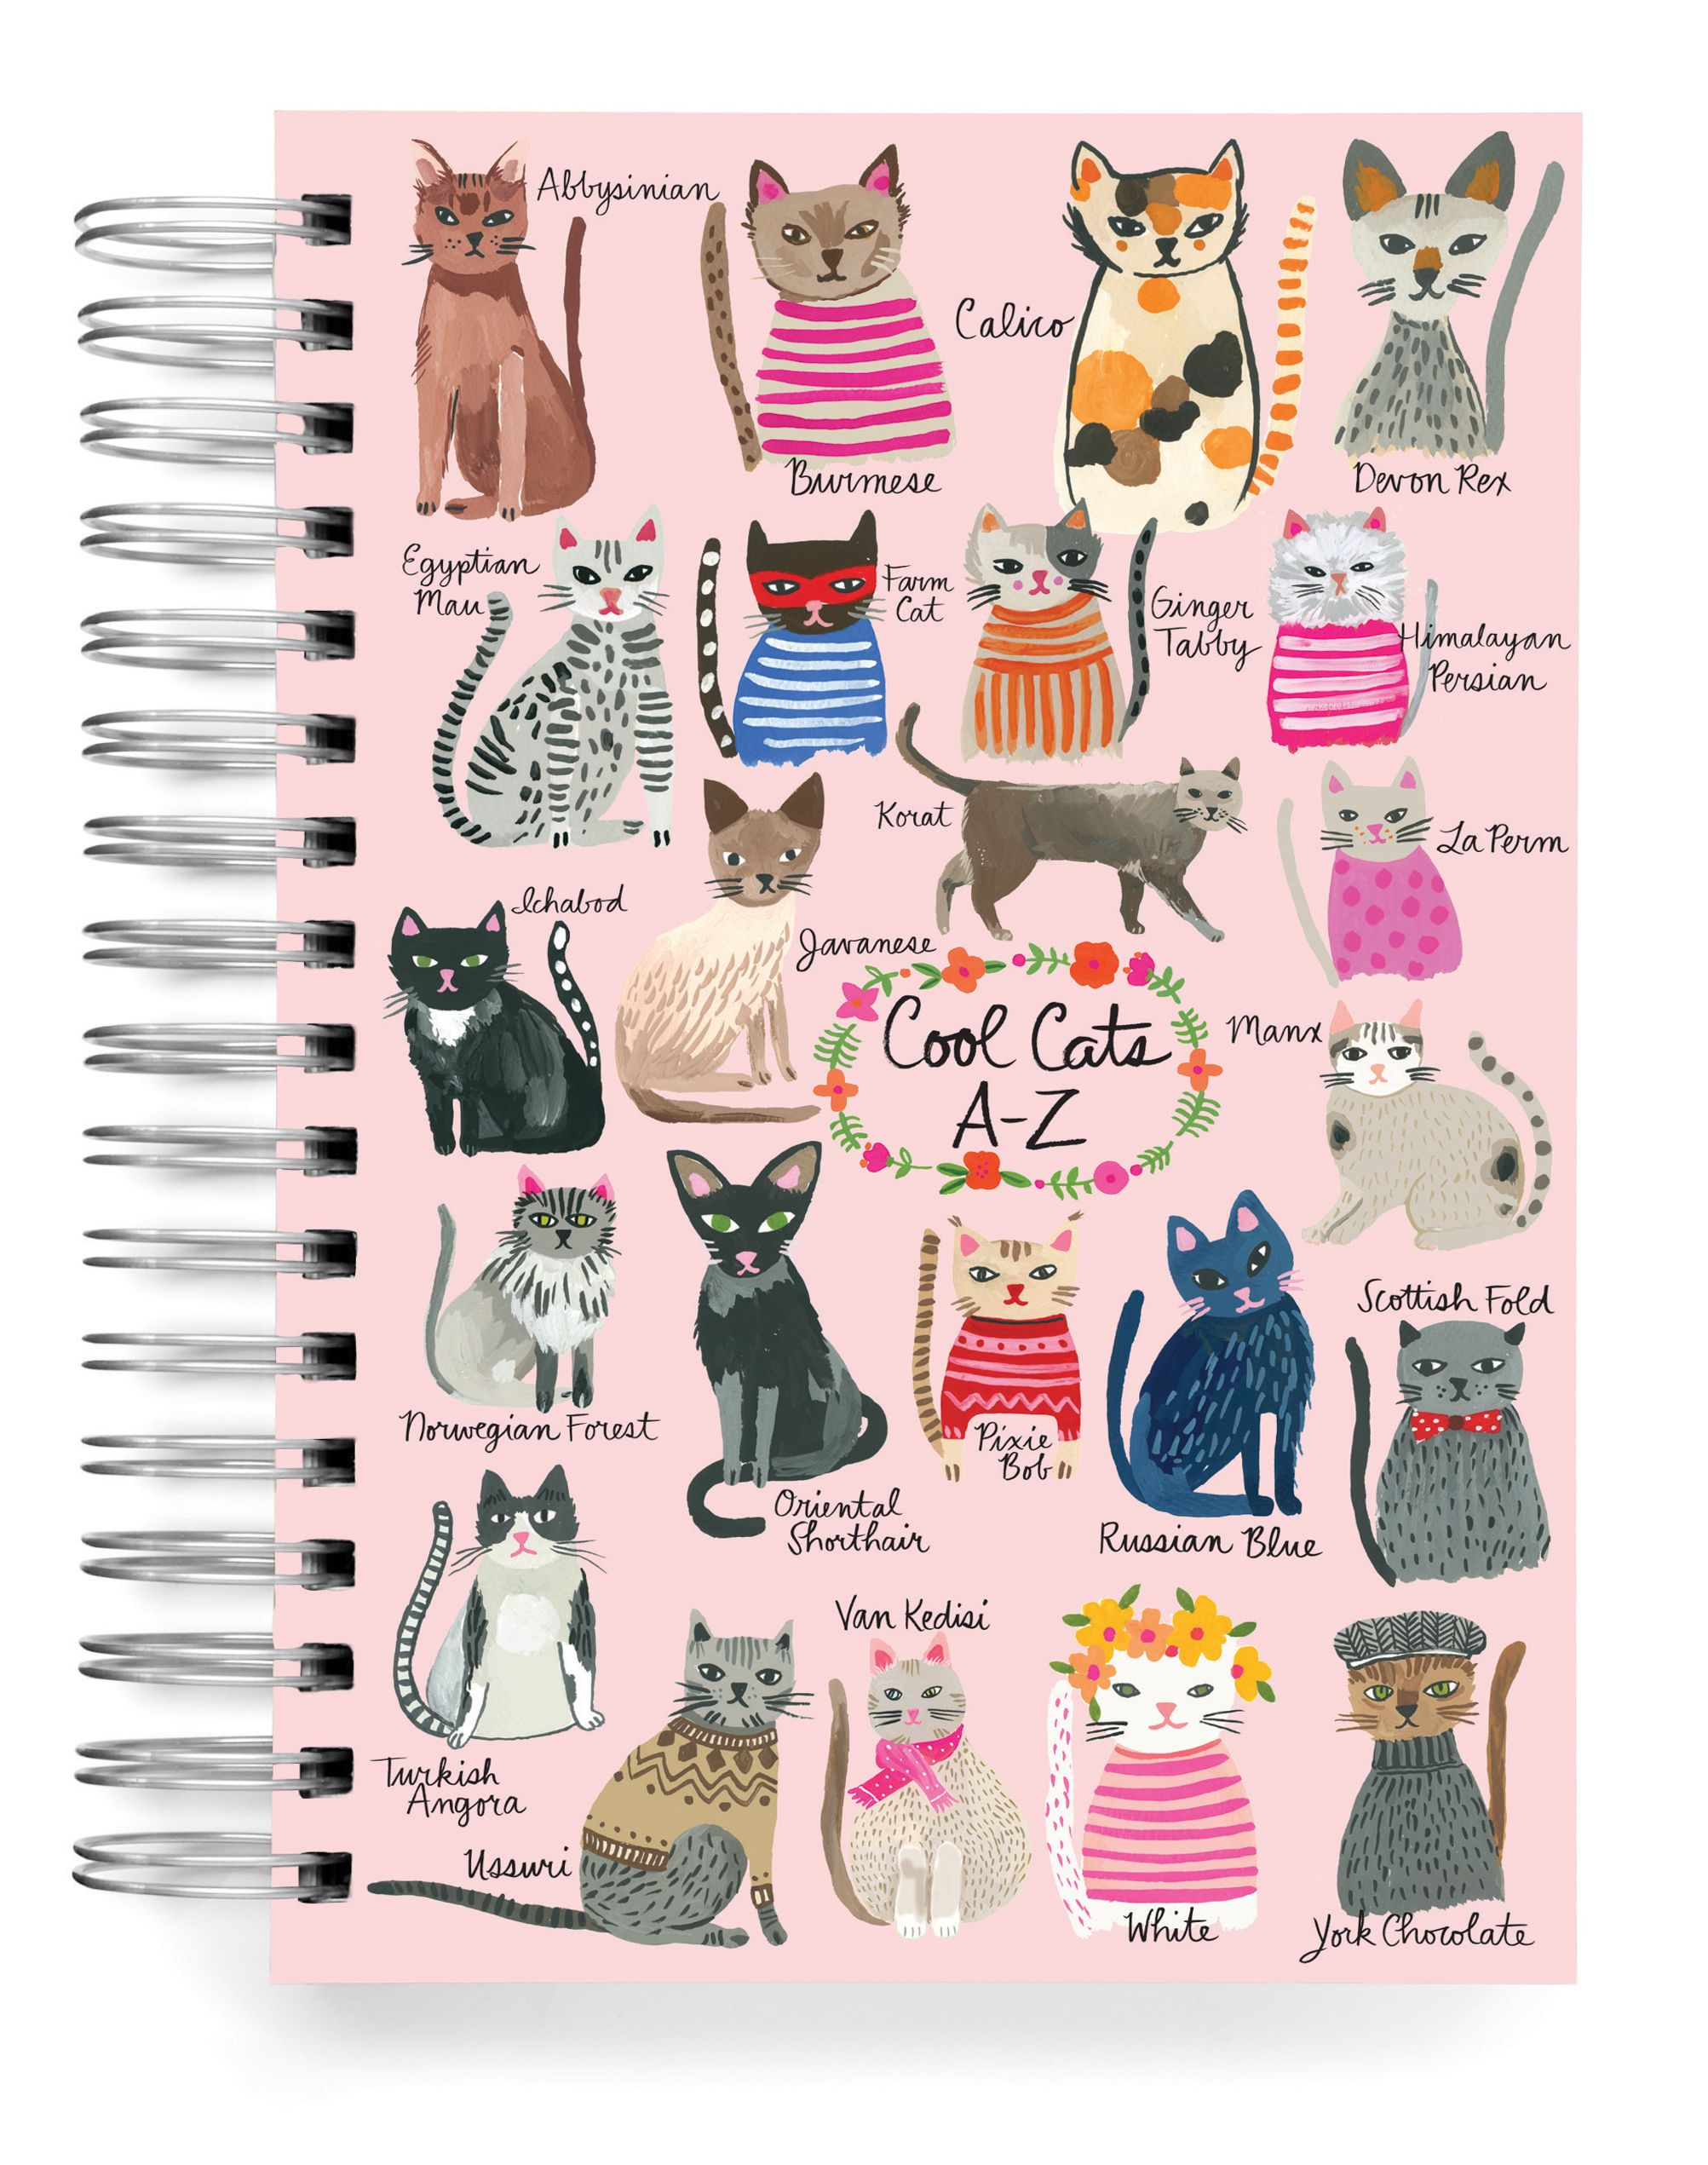 Journals 5x7 Journals Cool Cats A Z Journal 5x7 Ecojot Eco Savvy Paper Products Illustration Graphique Chien Chat Chat